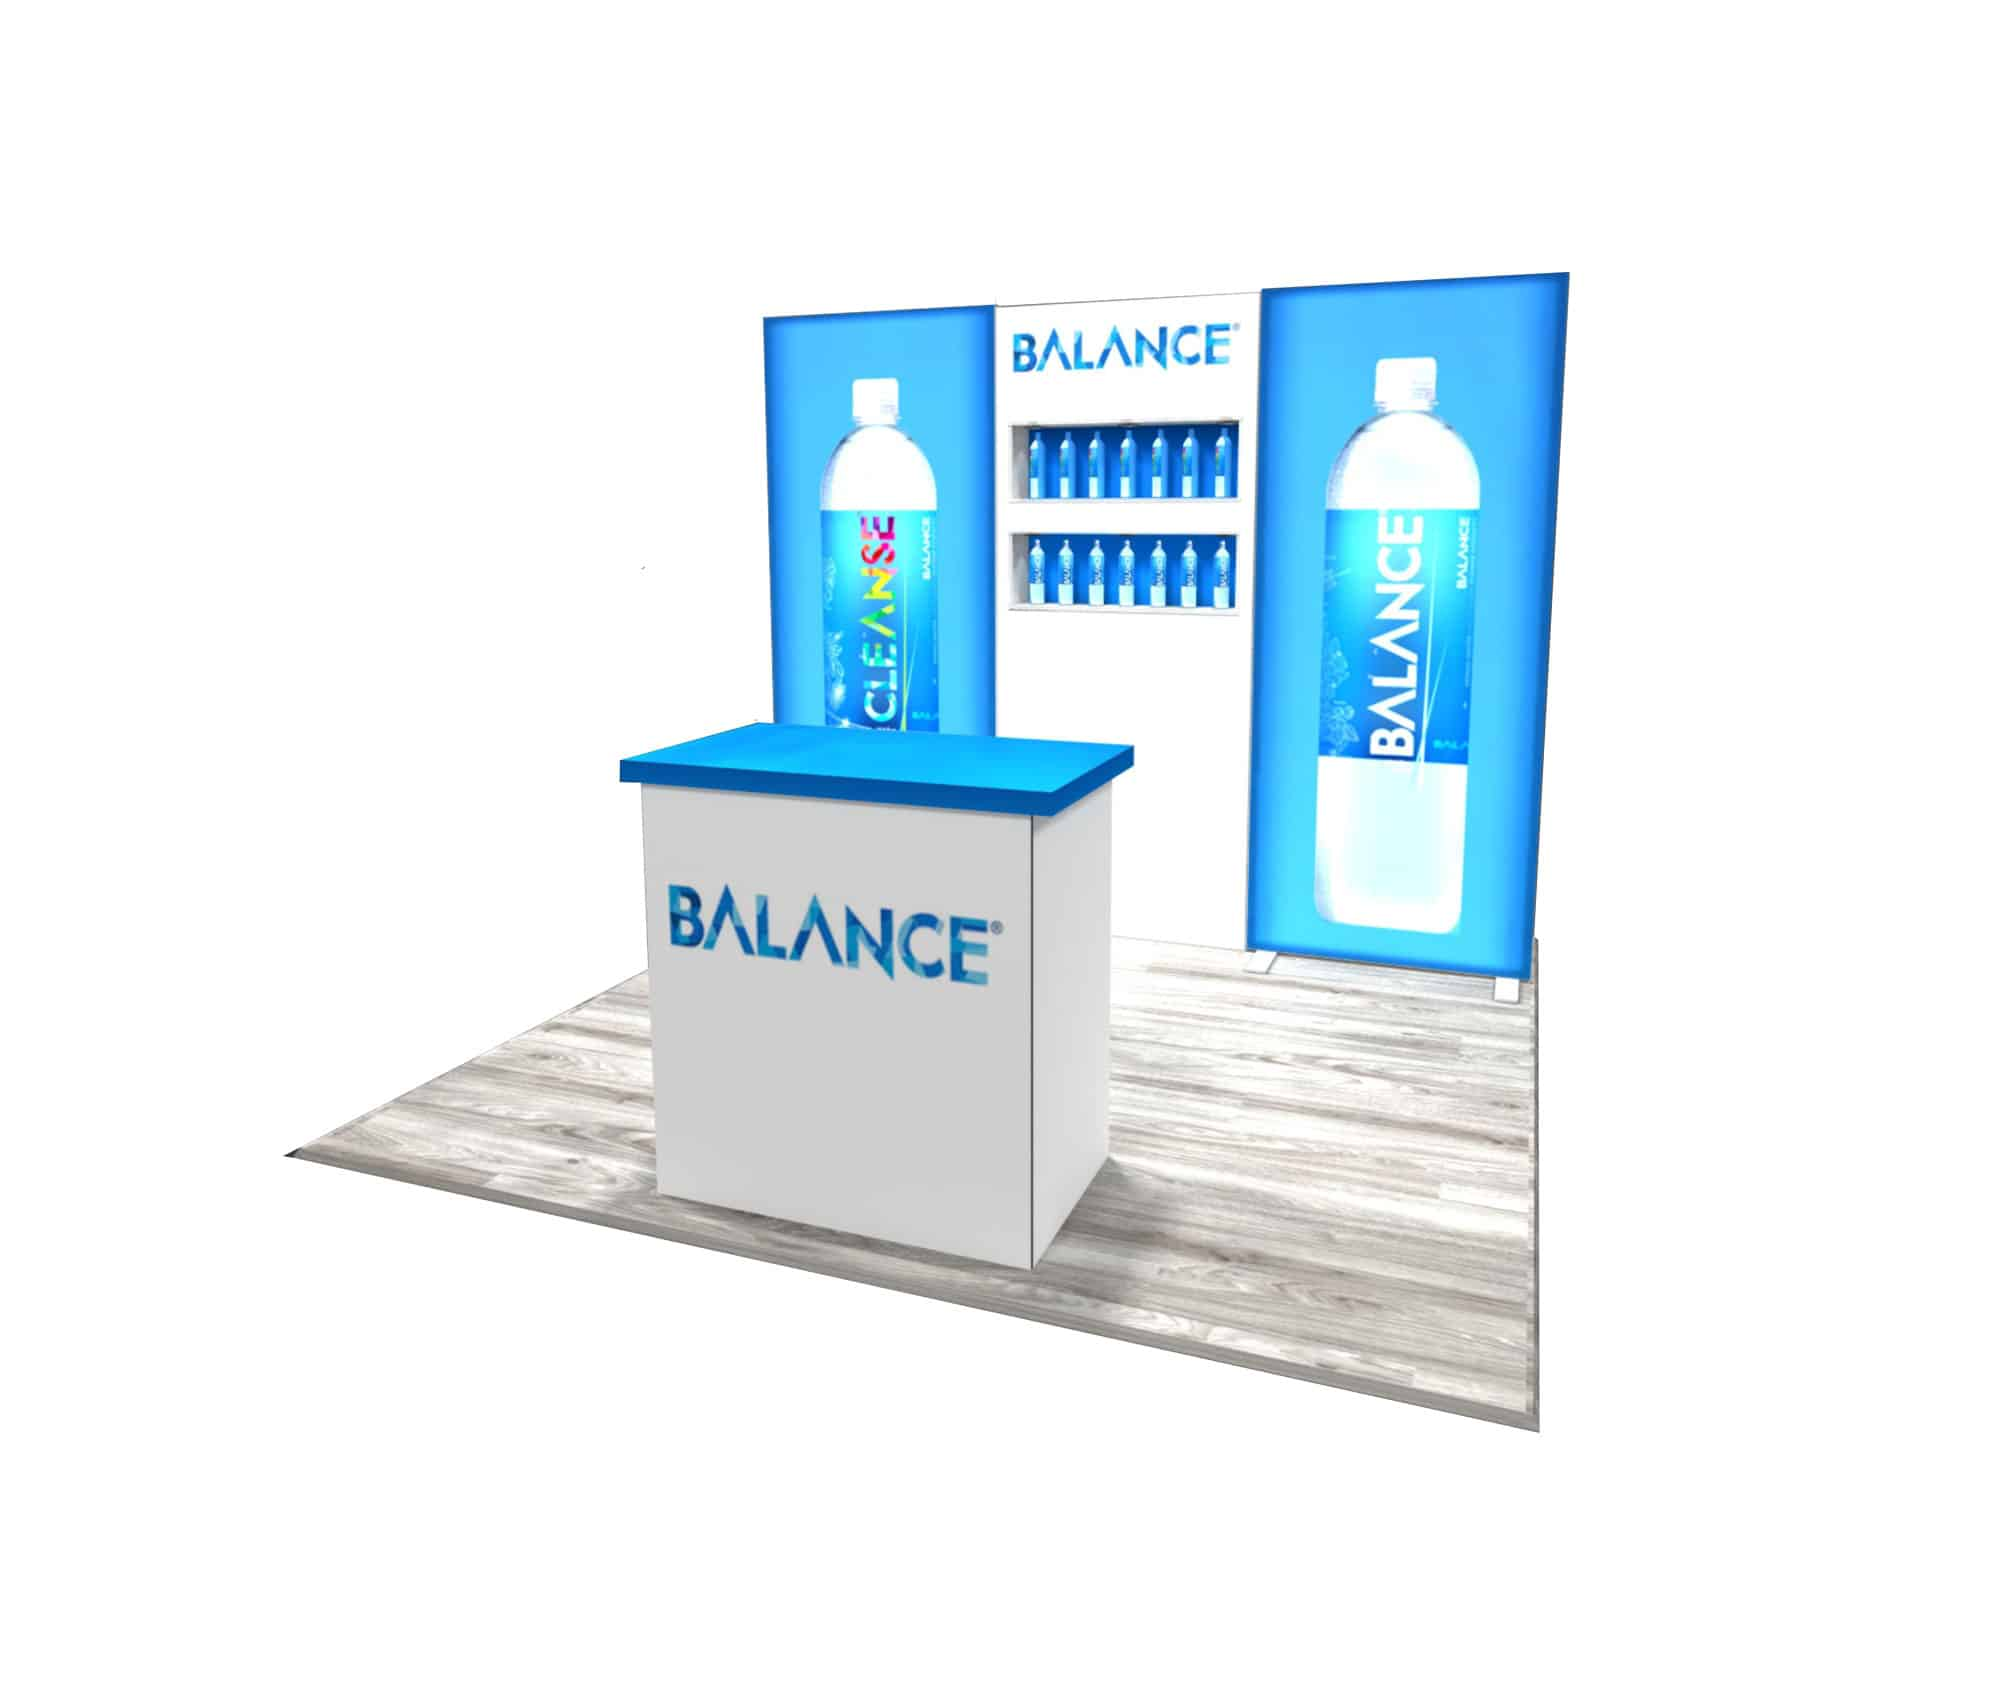 10x10 Trade Show Booth Rental: Balance Water